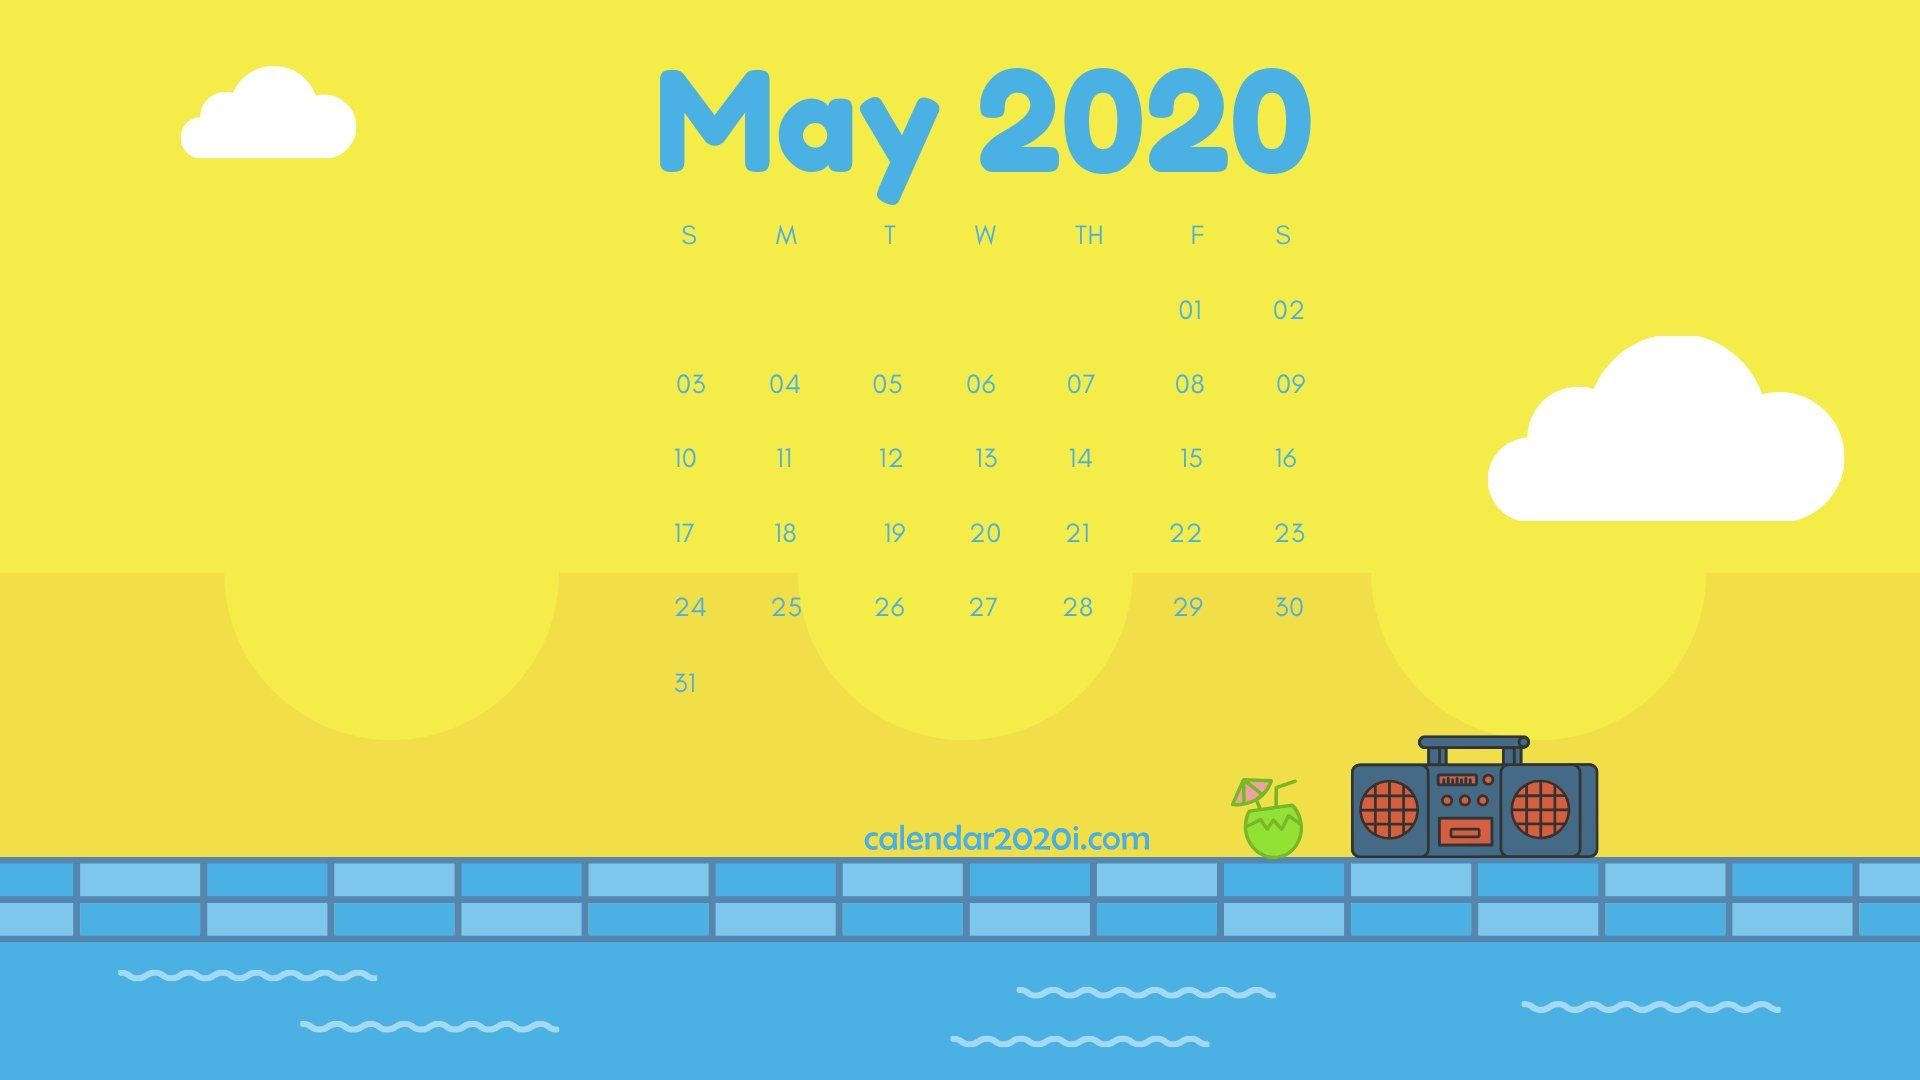 May 2020 Calendar Desktop Wallpaper in 2019 Calendar wallpaper 1920x1080